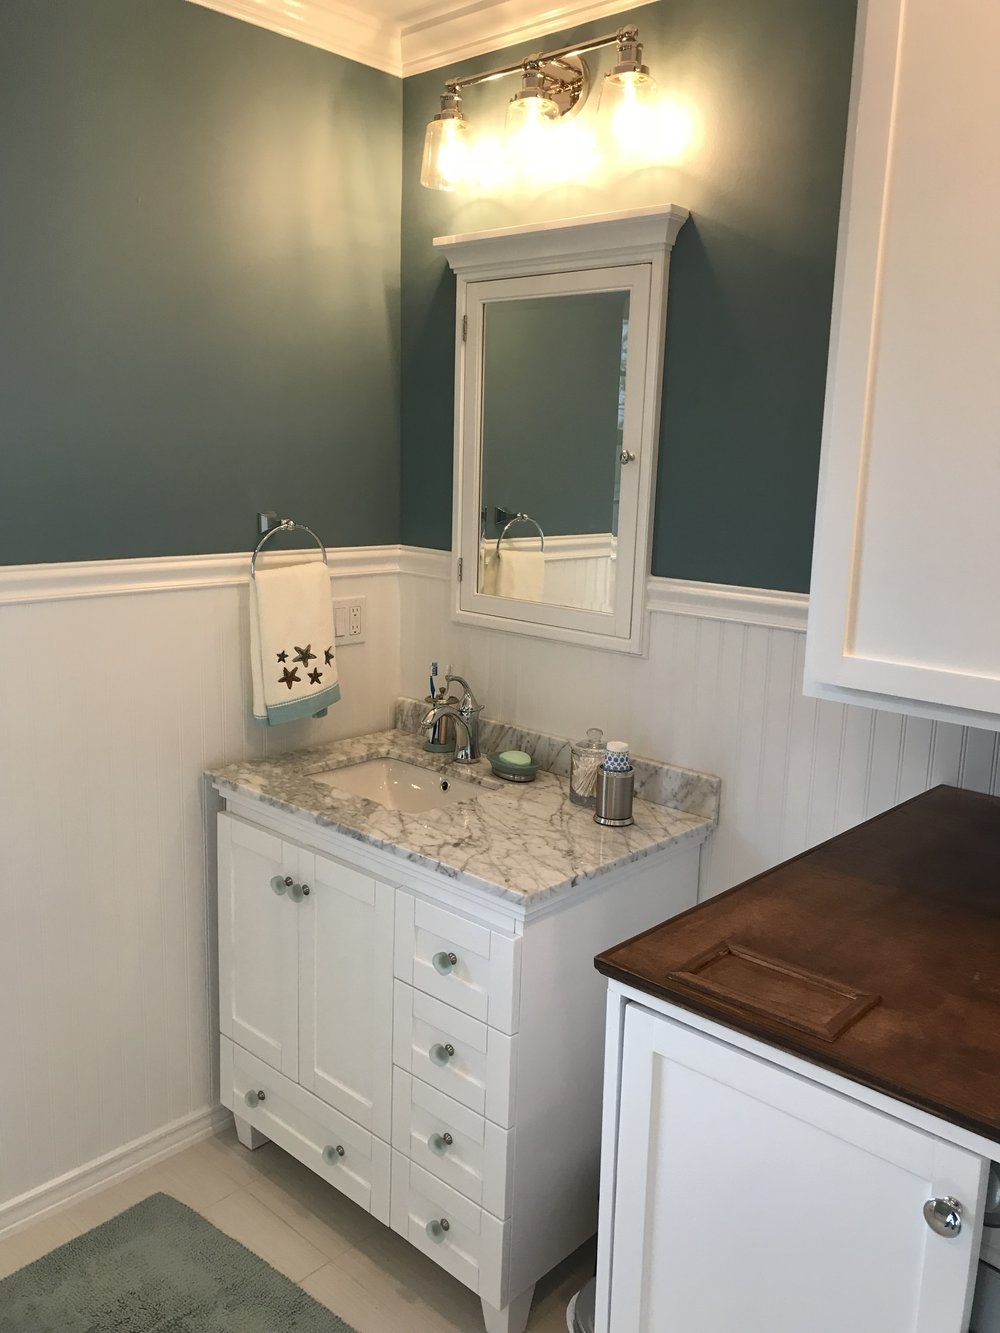 Shaw Remodeling - Bathroom Remodel in East Lyme CT